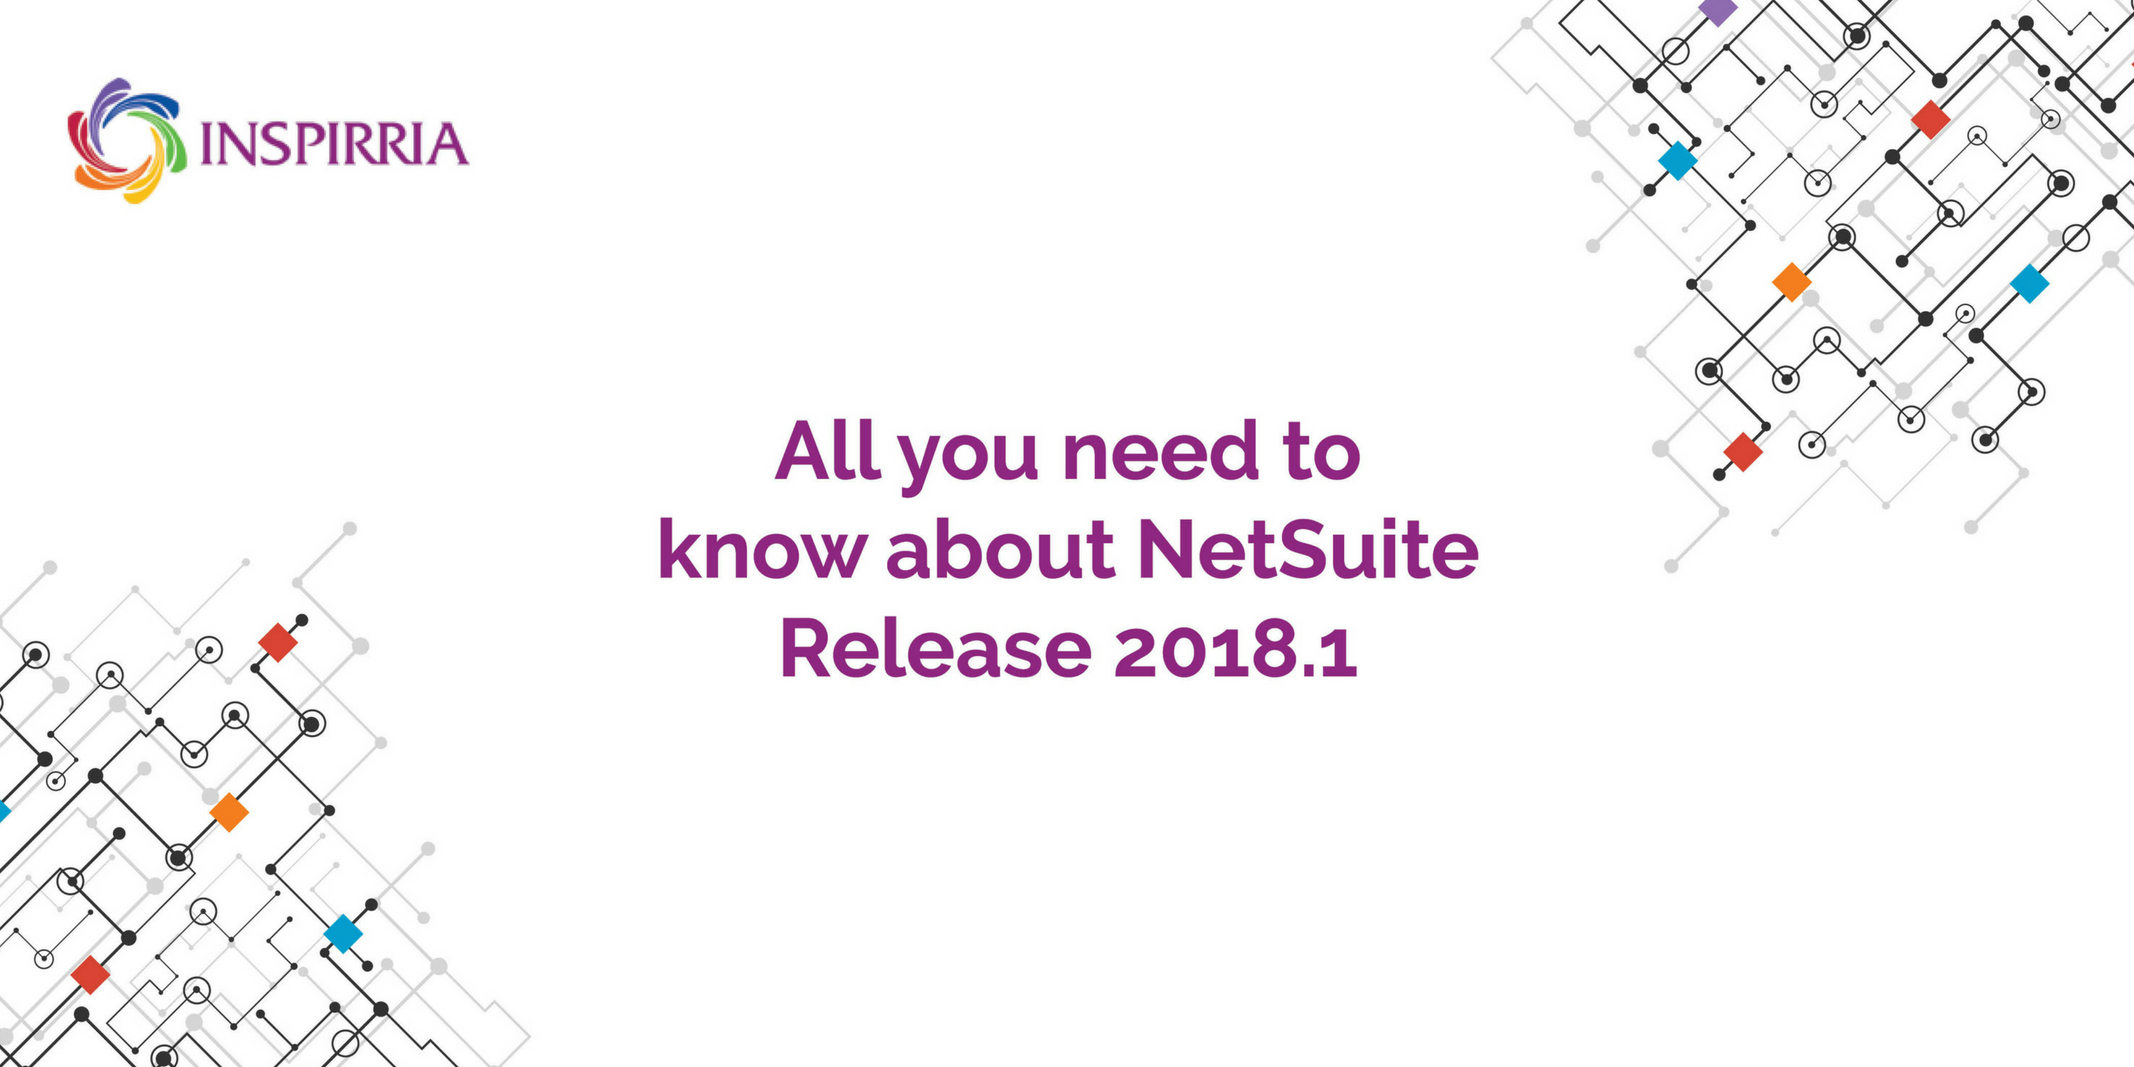 NetSuite Release 2018.1 Part 3